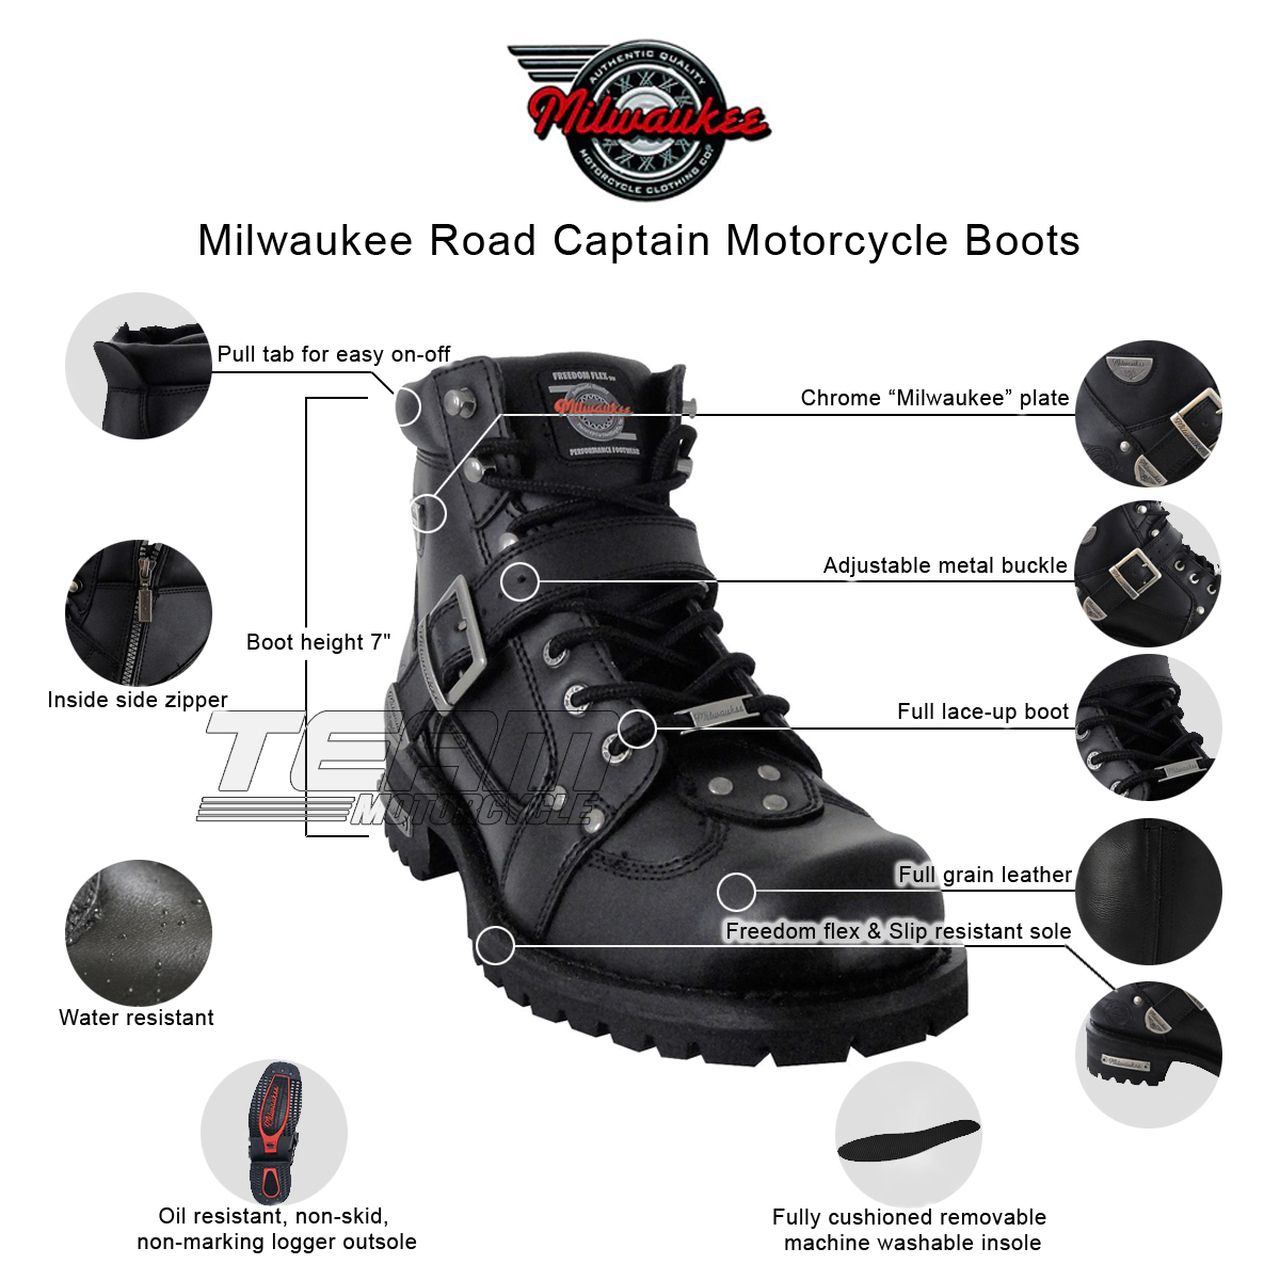 Size 8.5D Milwaukee Motorcycle Clothing Company Mens Road Captain Motorcycle Boots